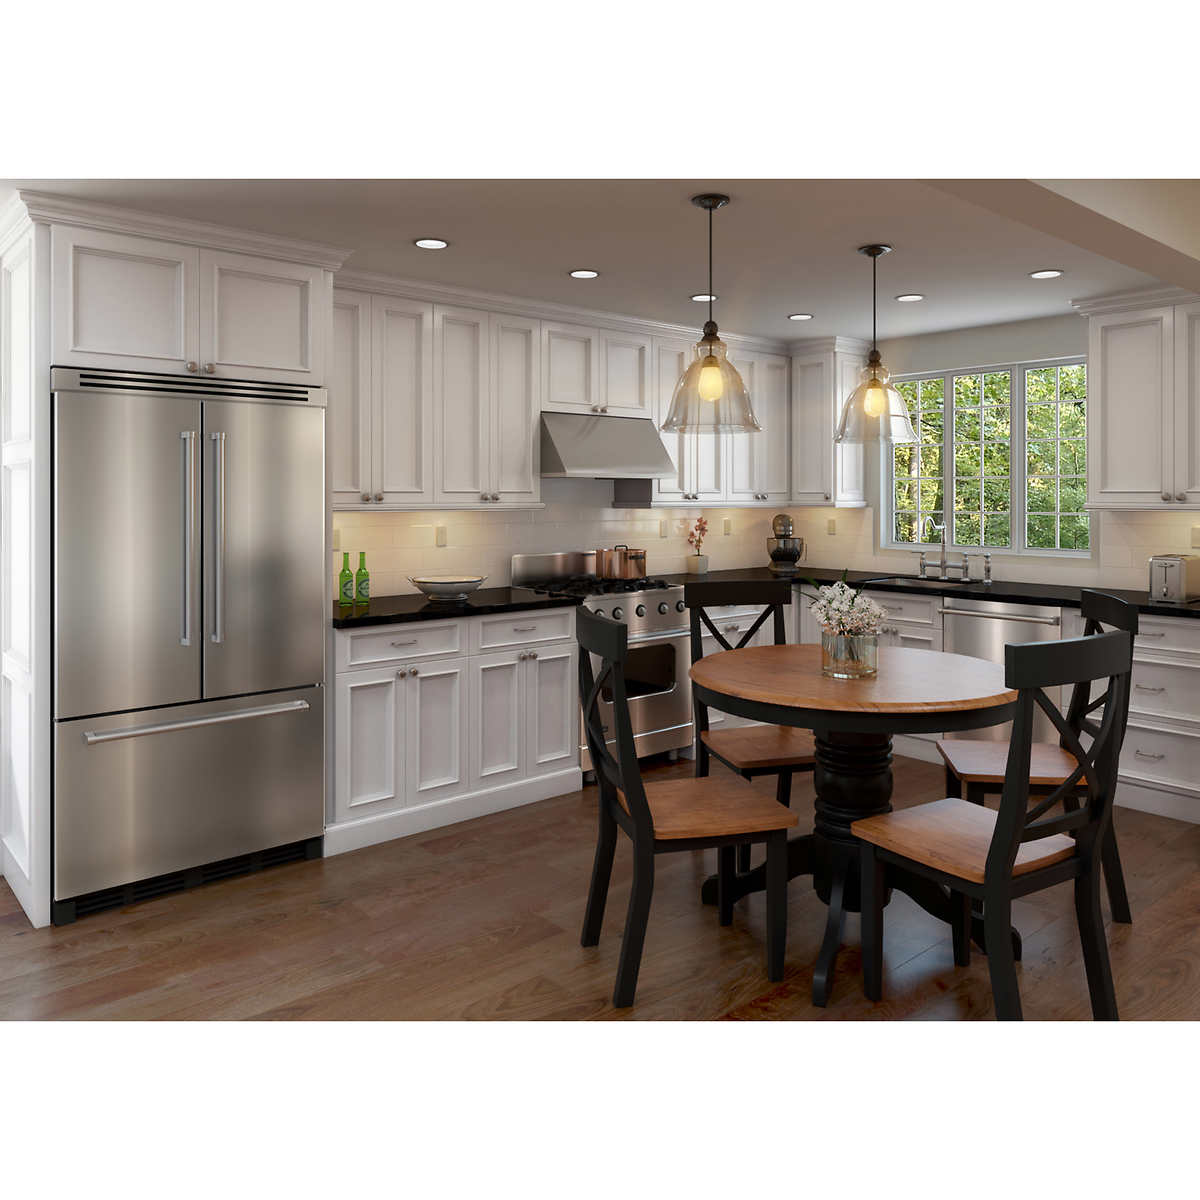 cabinets costco kitchens by foremost custom designed kitchen cabinets